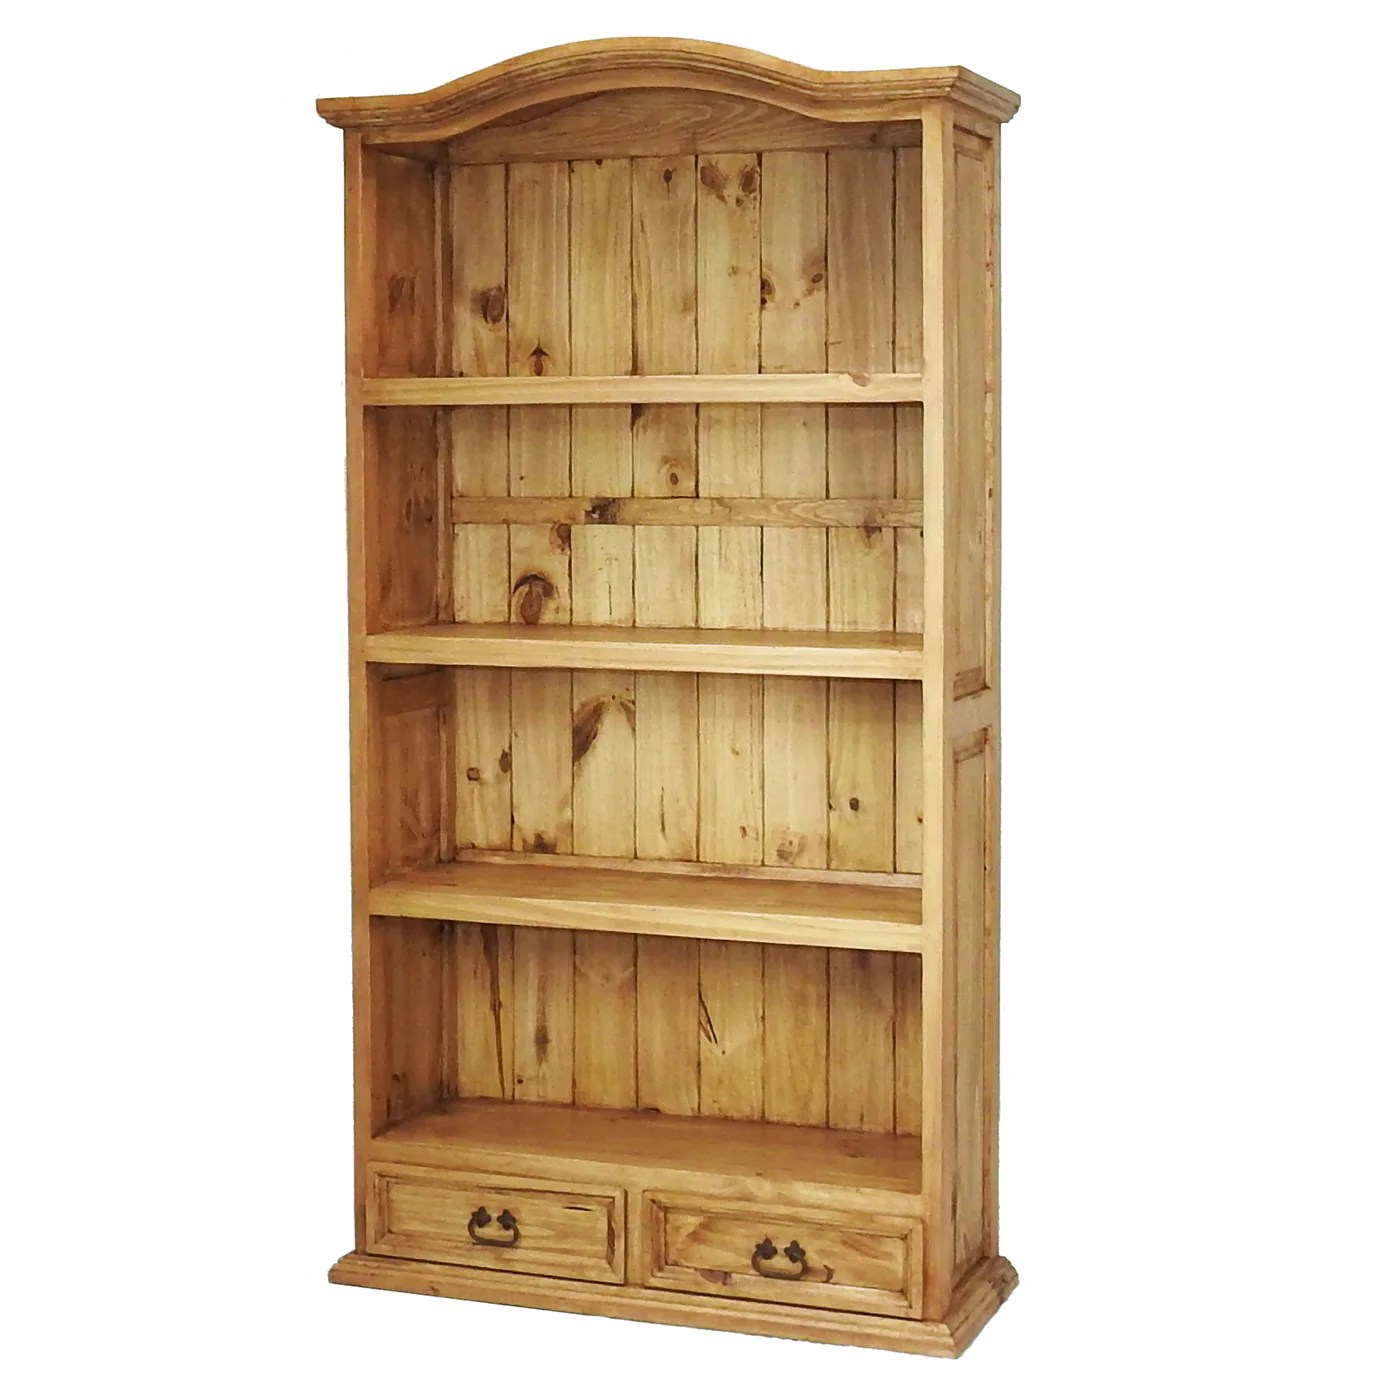 Traditional Small Bookcase Rustics For Less